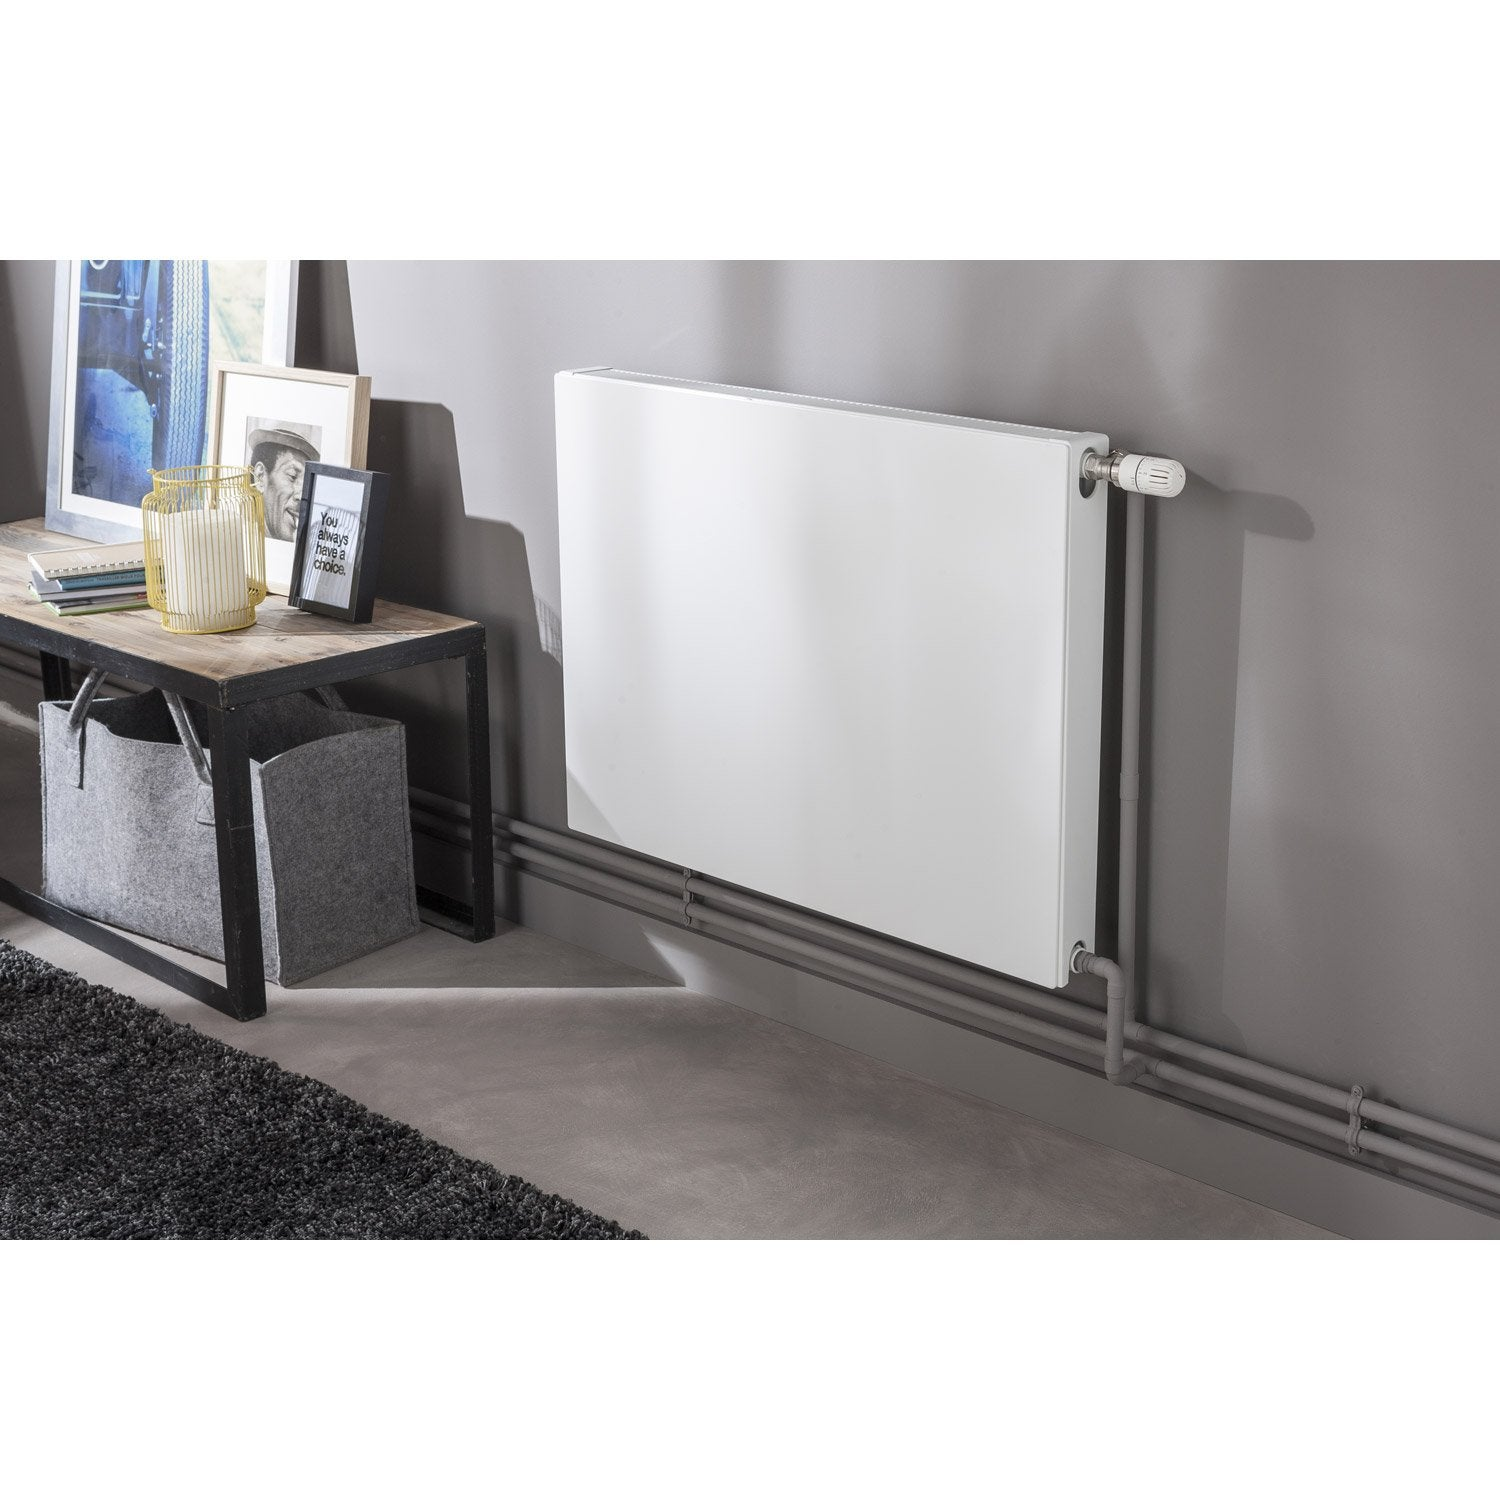 radiateur chauffage central colima blanc cm 954 w leroy merlin. Black Bedroom Furniture Sets. Home Design Ideas